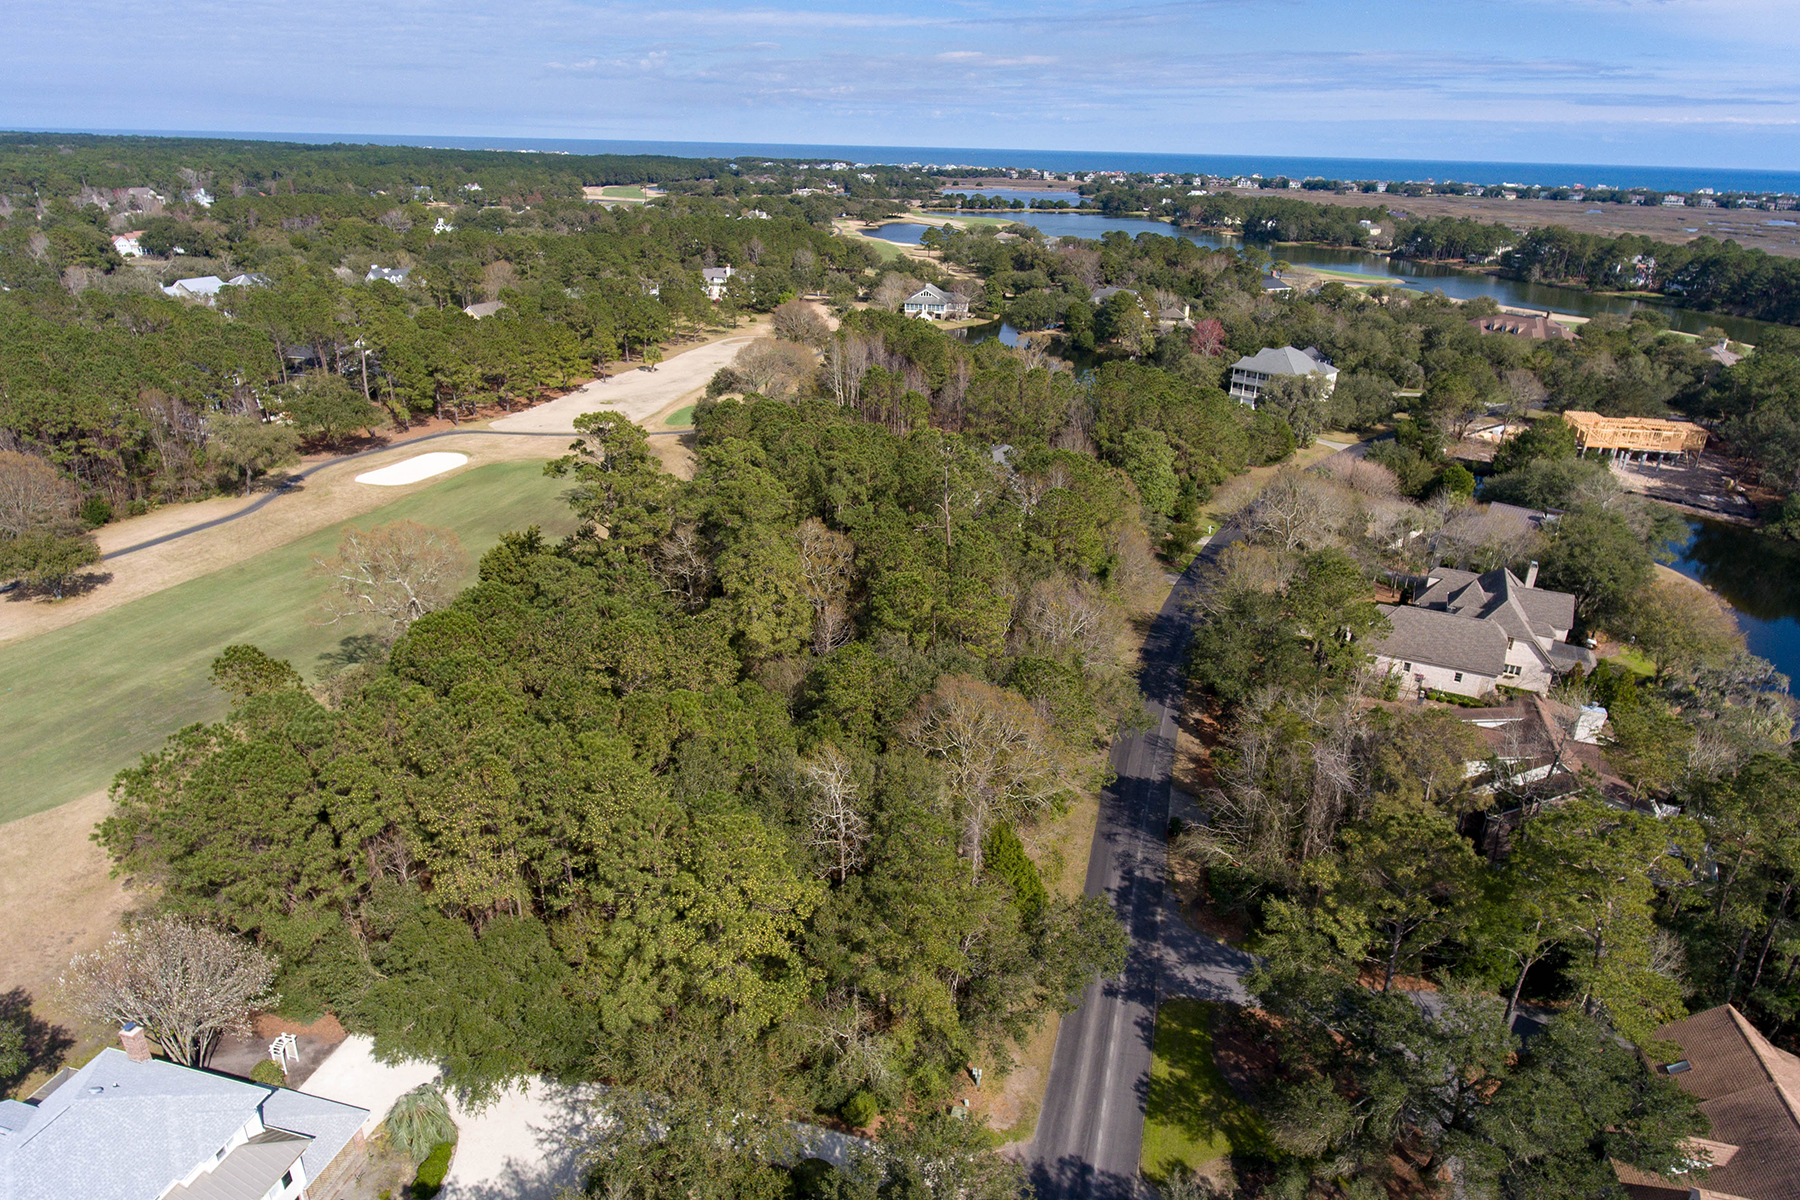 Land for Sale at Lot 161 Sanderling Ave. Georgetown, South Carolina 29440 United States